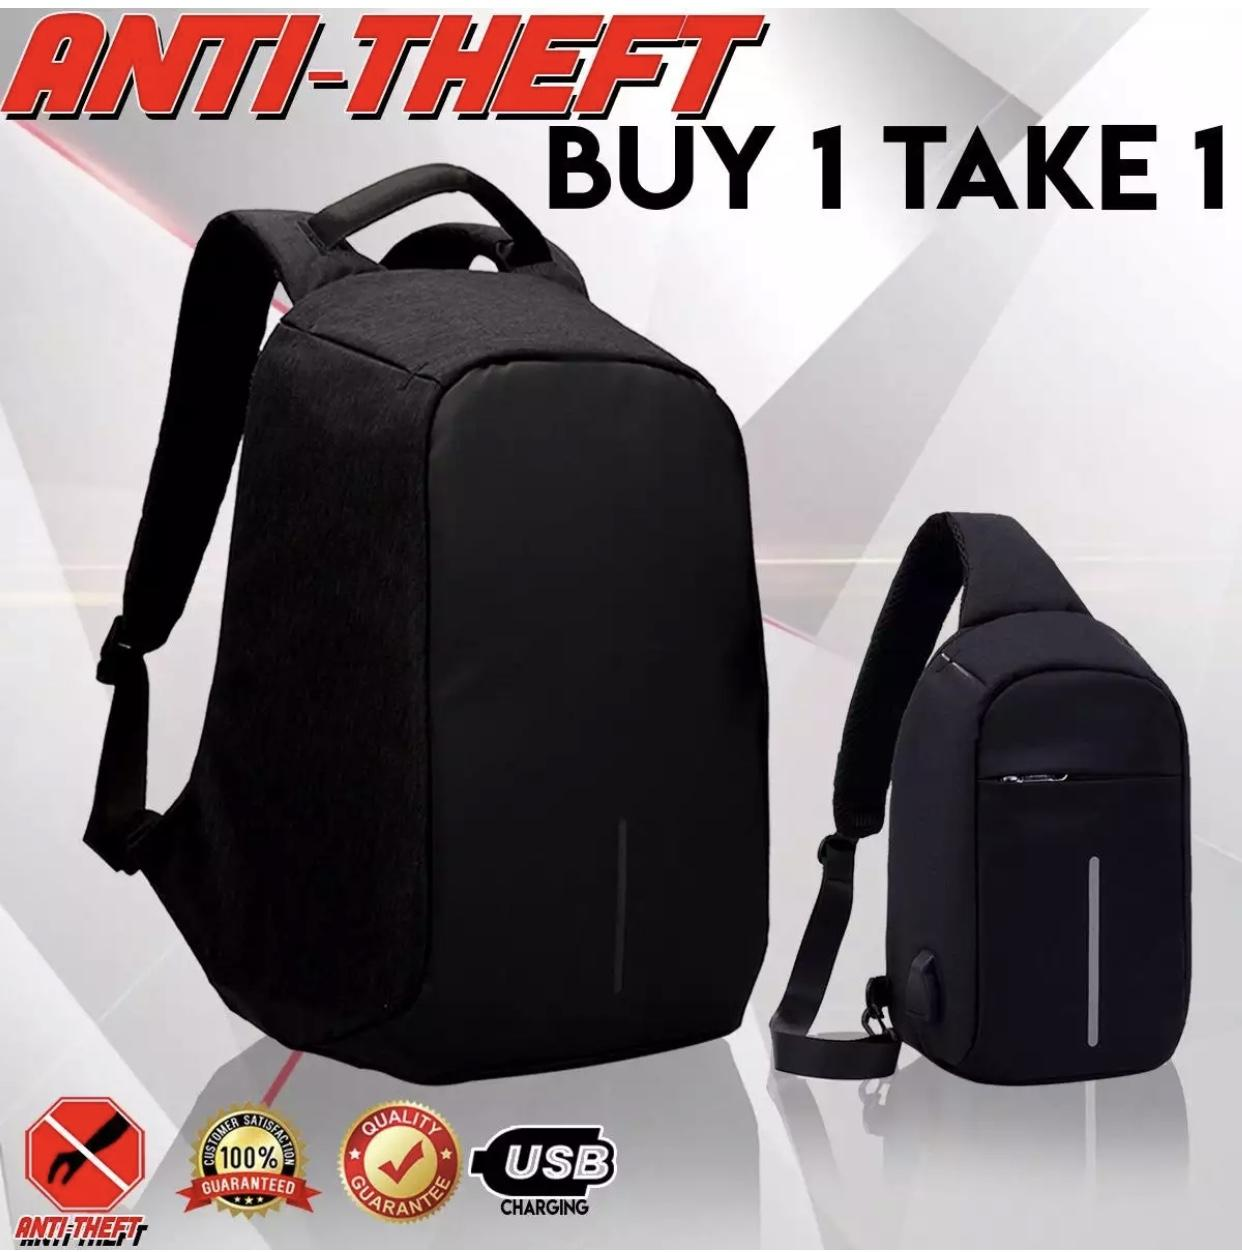 #110(Lager) Free #119(Small)  Travel Anti Theft Backpack and Cross Chest Security Bag  Buy 1 Take 1 -Edison Online Shop